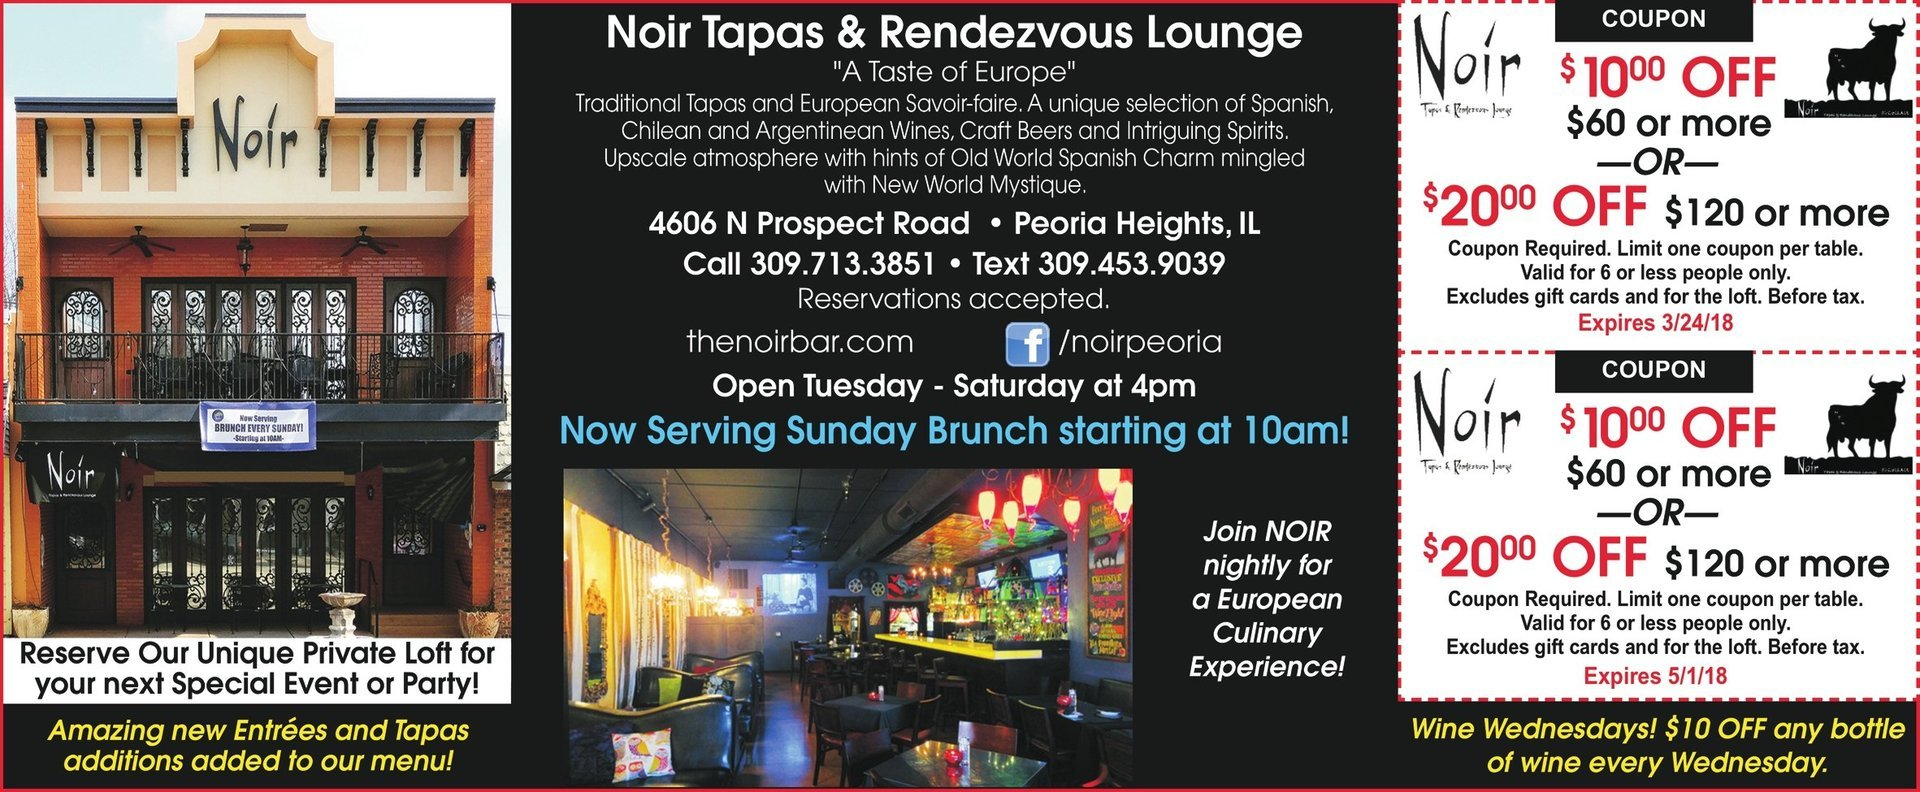 Noir Tapas and Rendezvous Lounge coupons Peoria Heights, IL